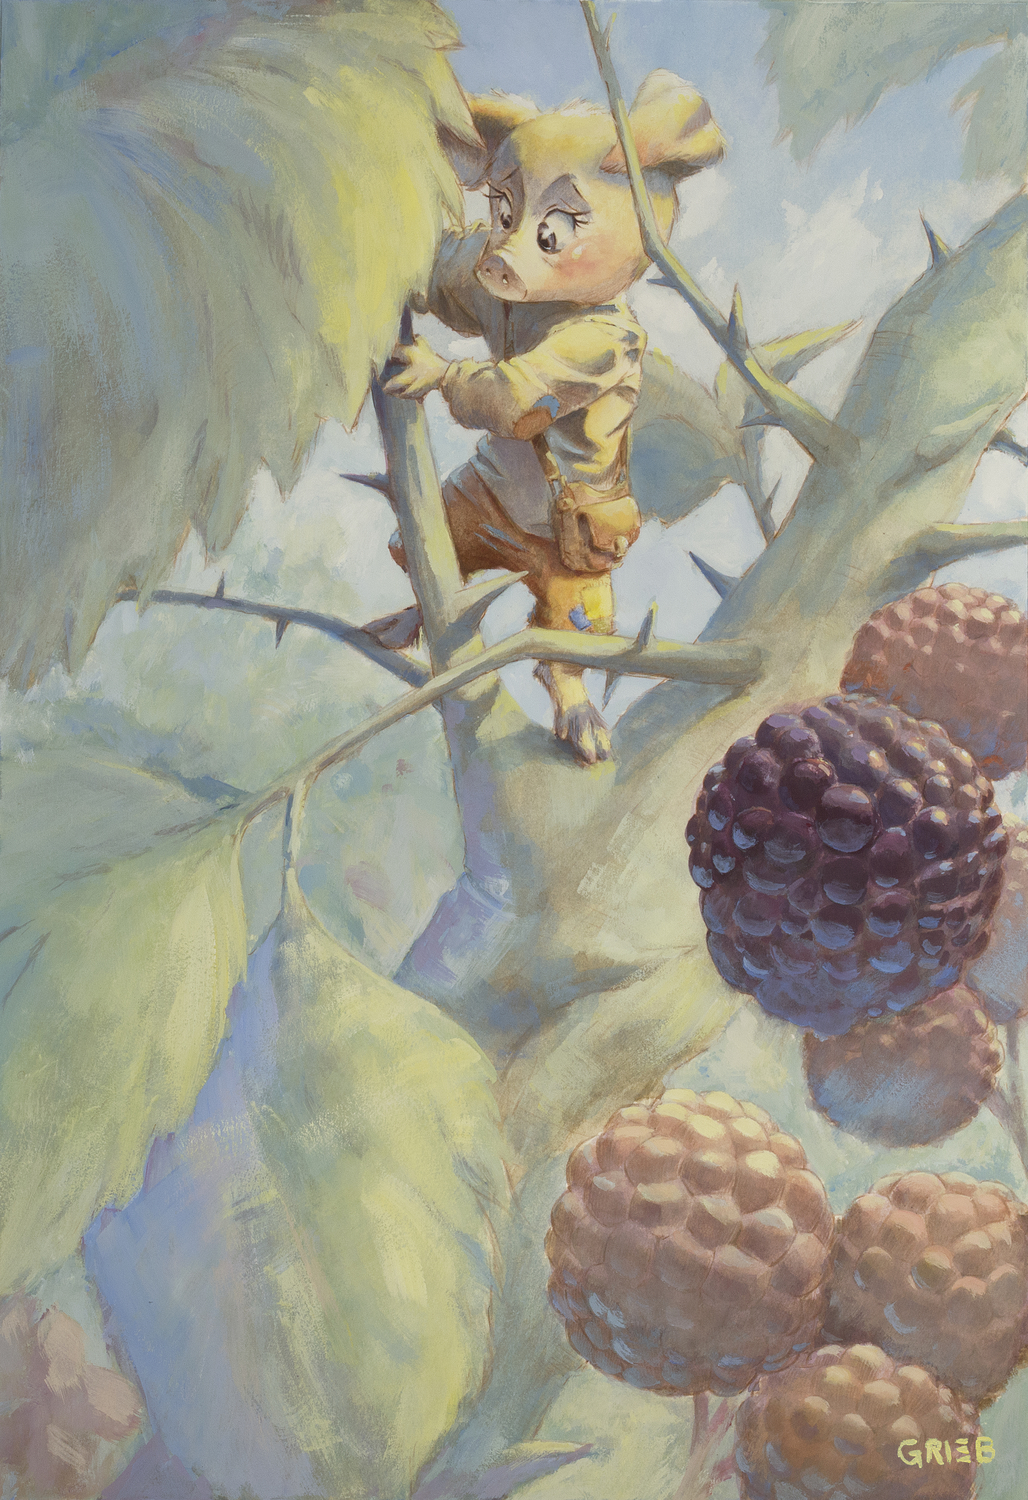 Picking Berries Artwork by Chuck Grieb